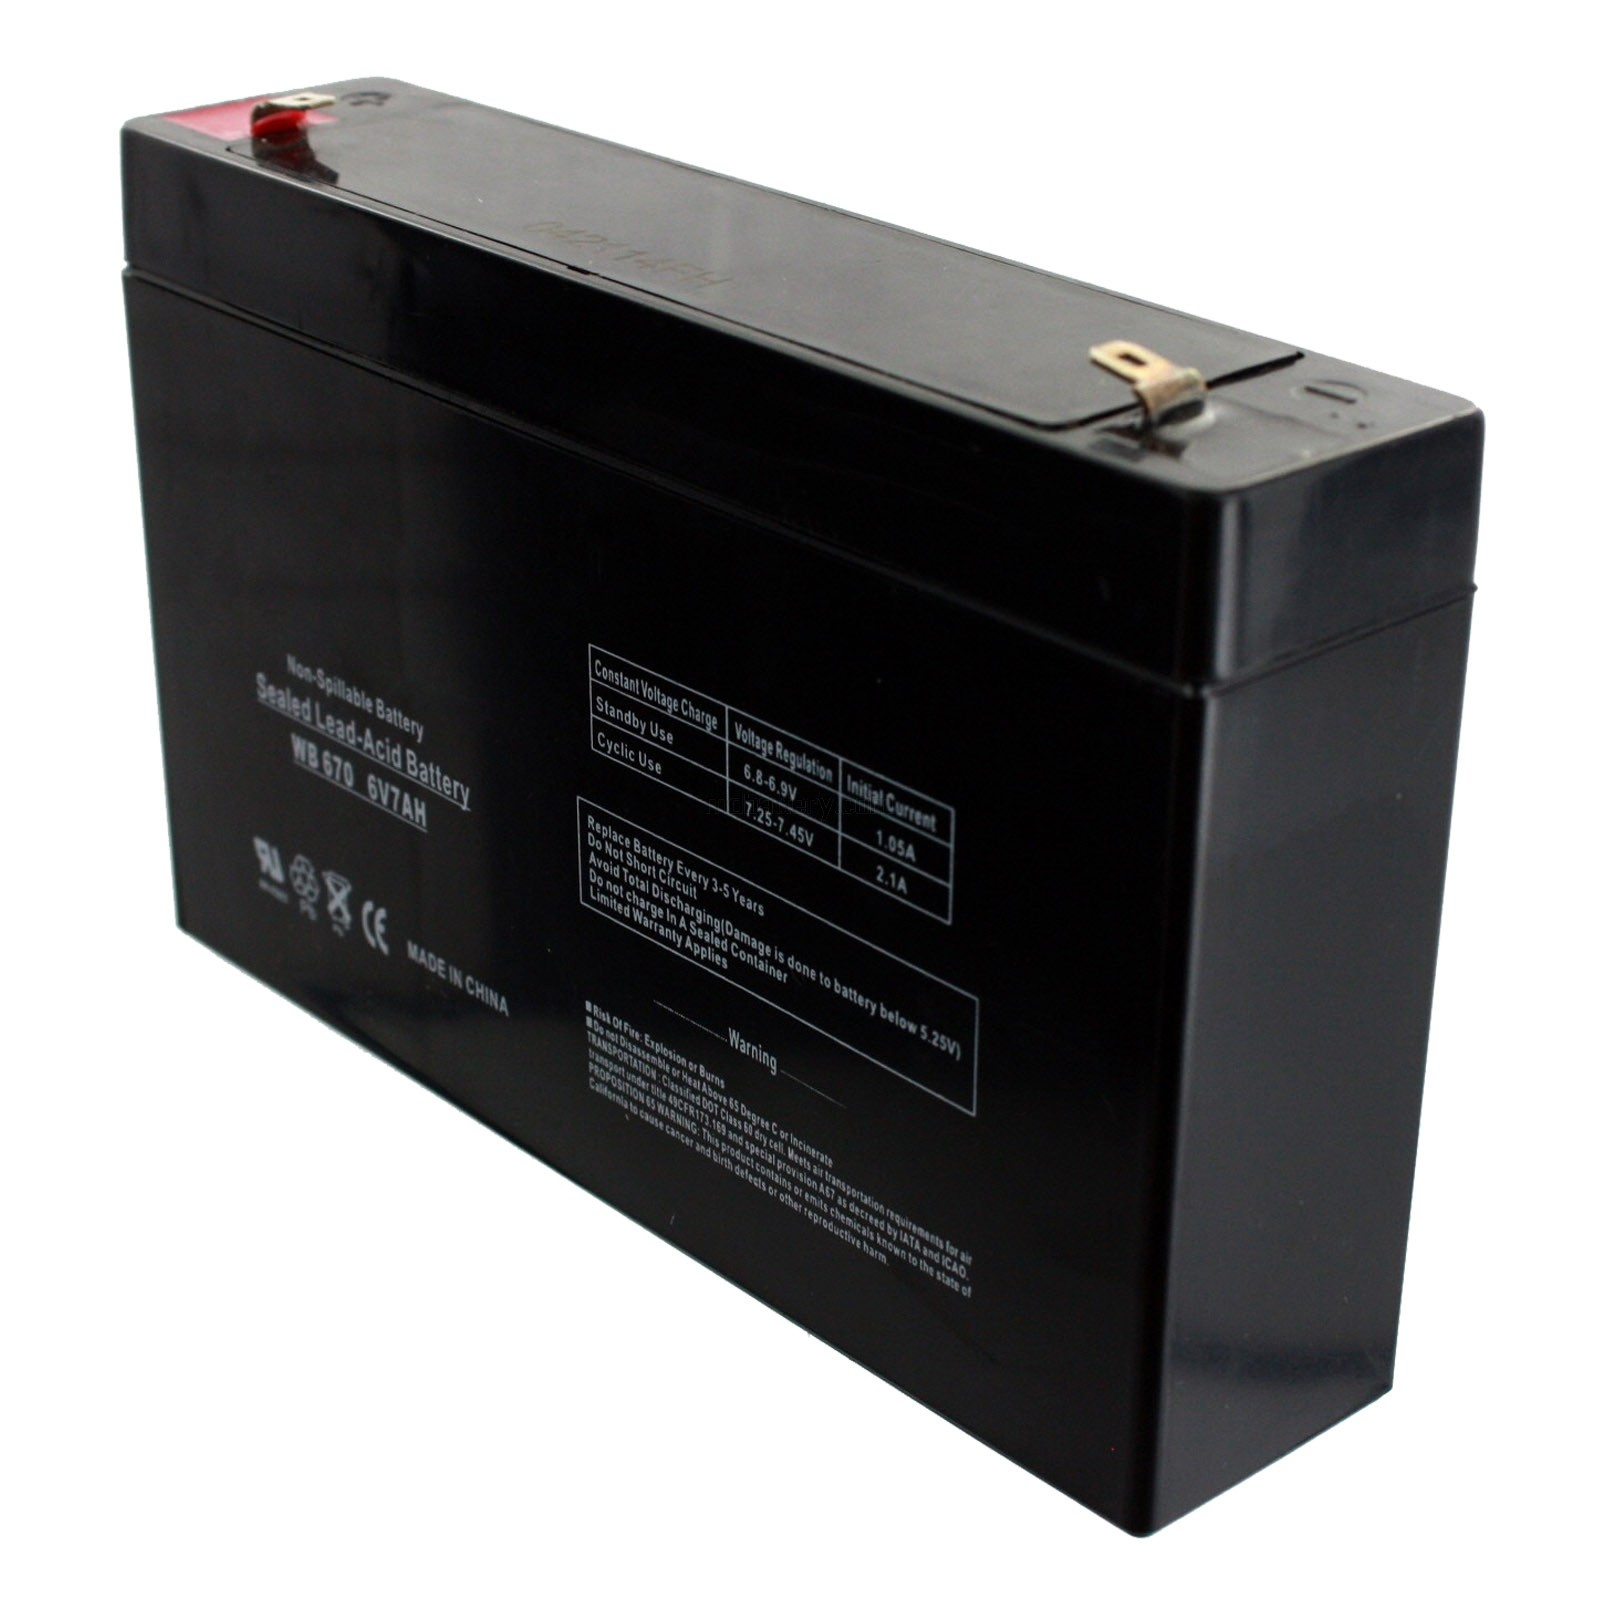 UPG 6V 7AH Replacement Battery for Upsonic SLIM 1000 WITH CHARGER